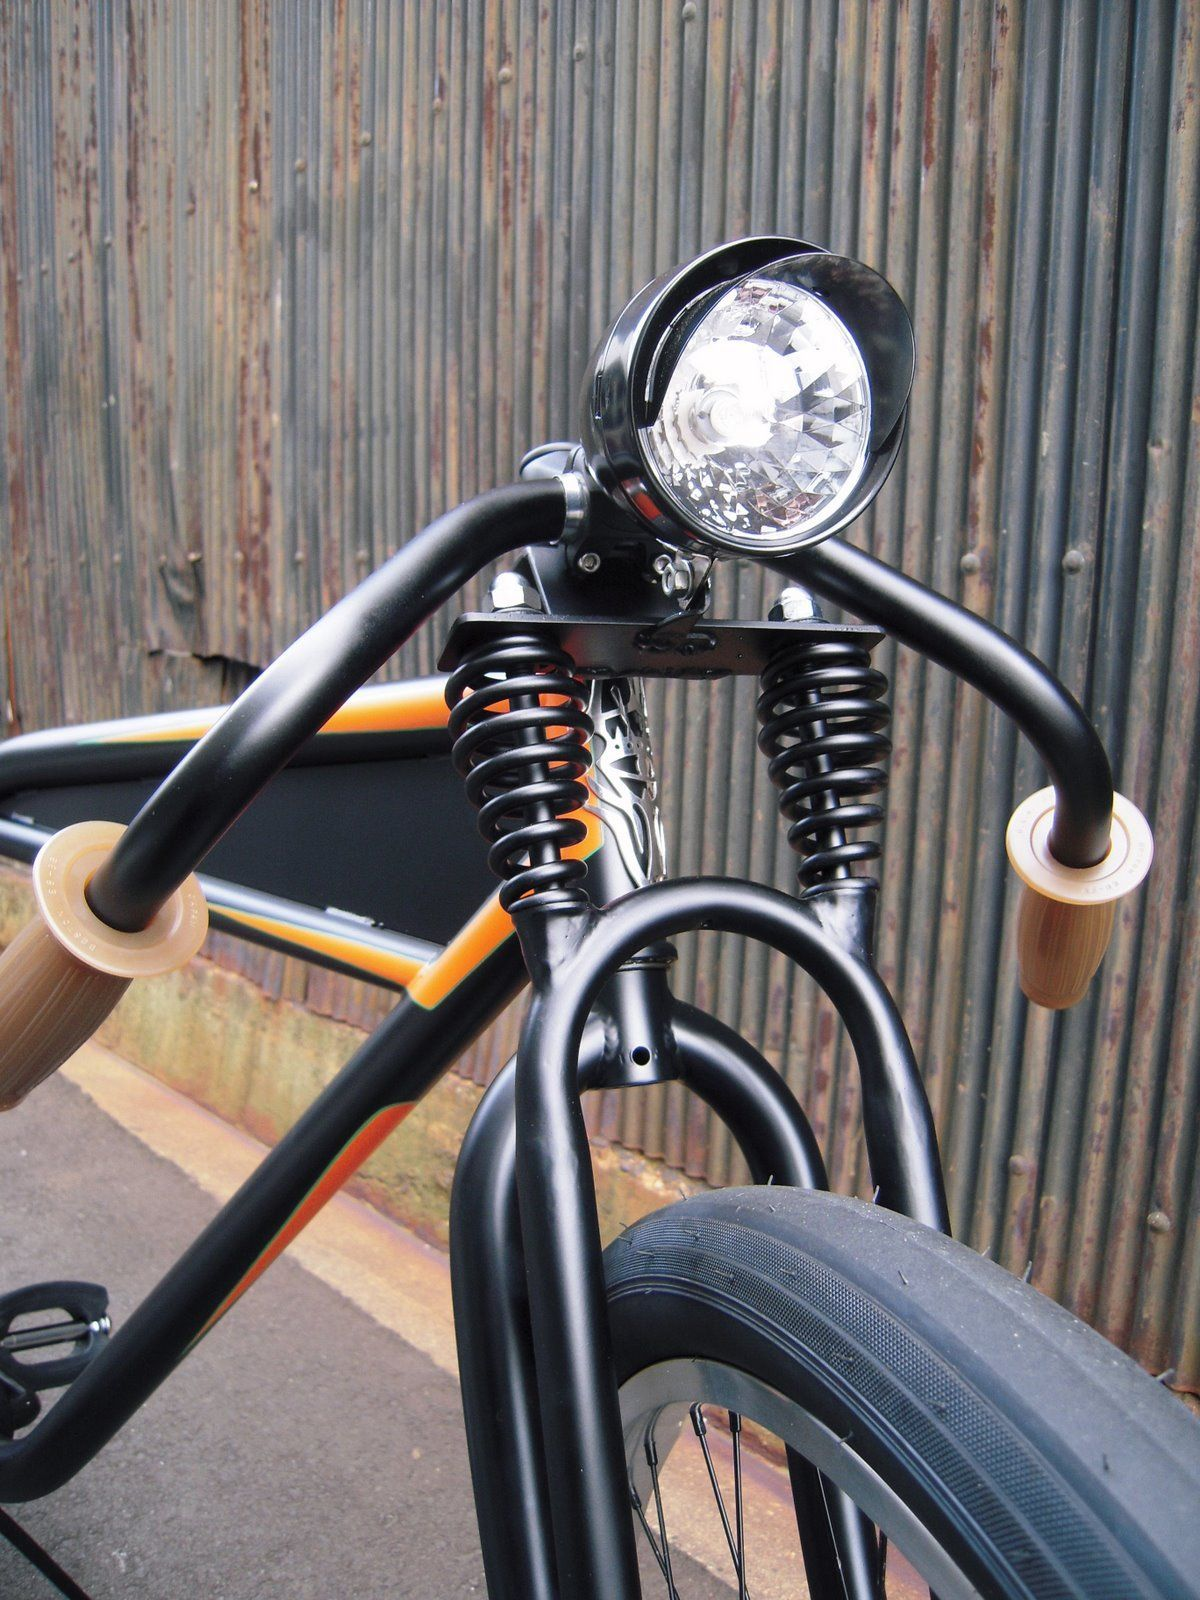 Pin By Allegro On Board Track Racers Lowrider Bicycle Bike Design Custom Bicycle